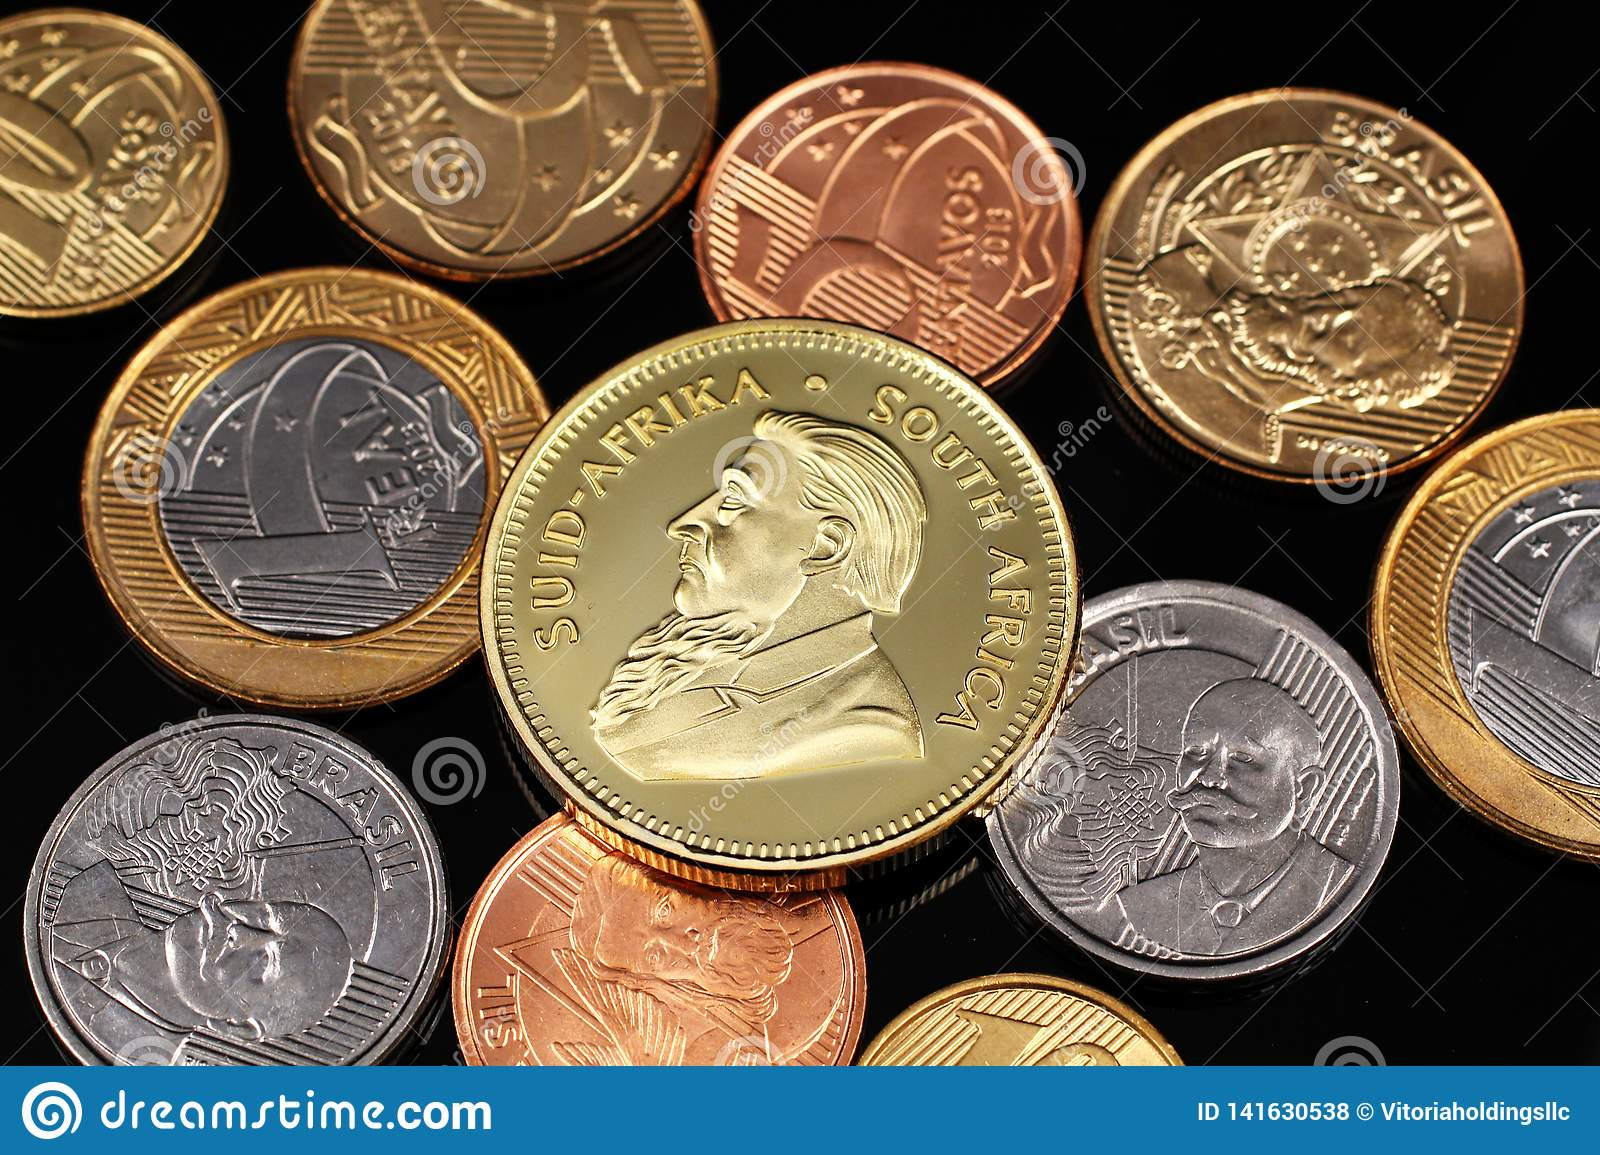 An assortment of Brazilian coins on a black reflective background with a South African one ounce gold Krugerrand coin